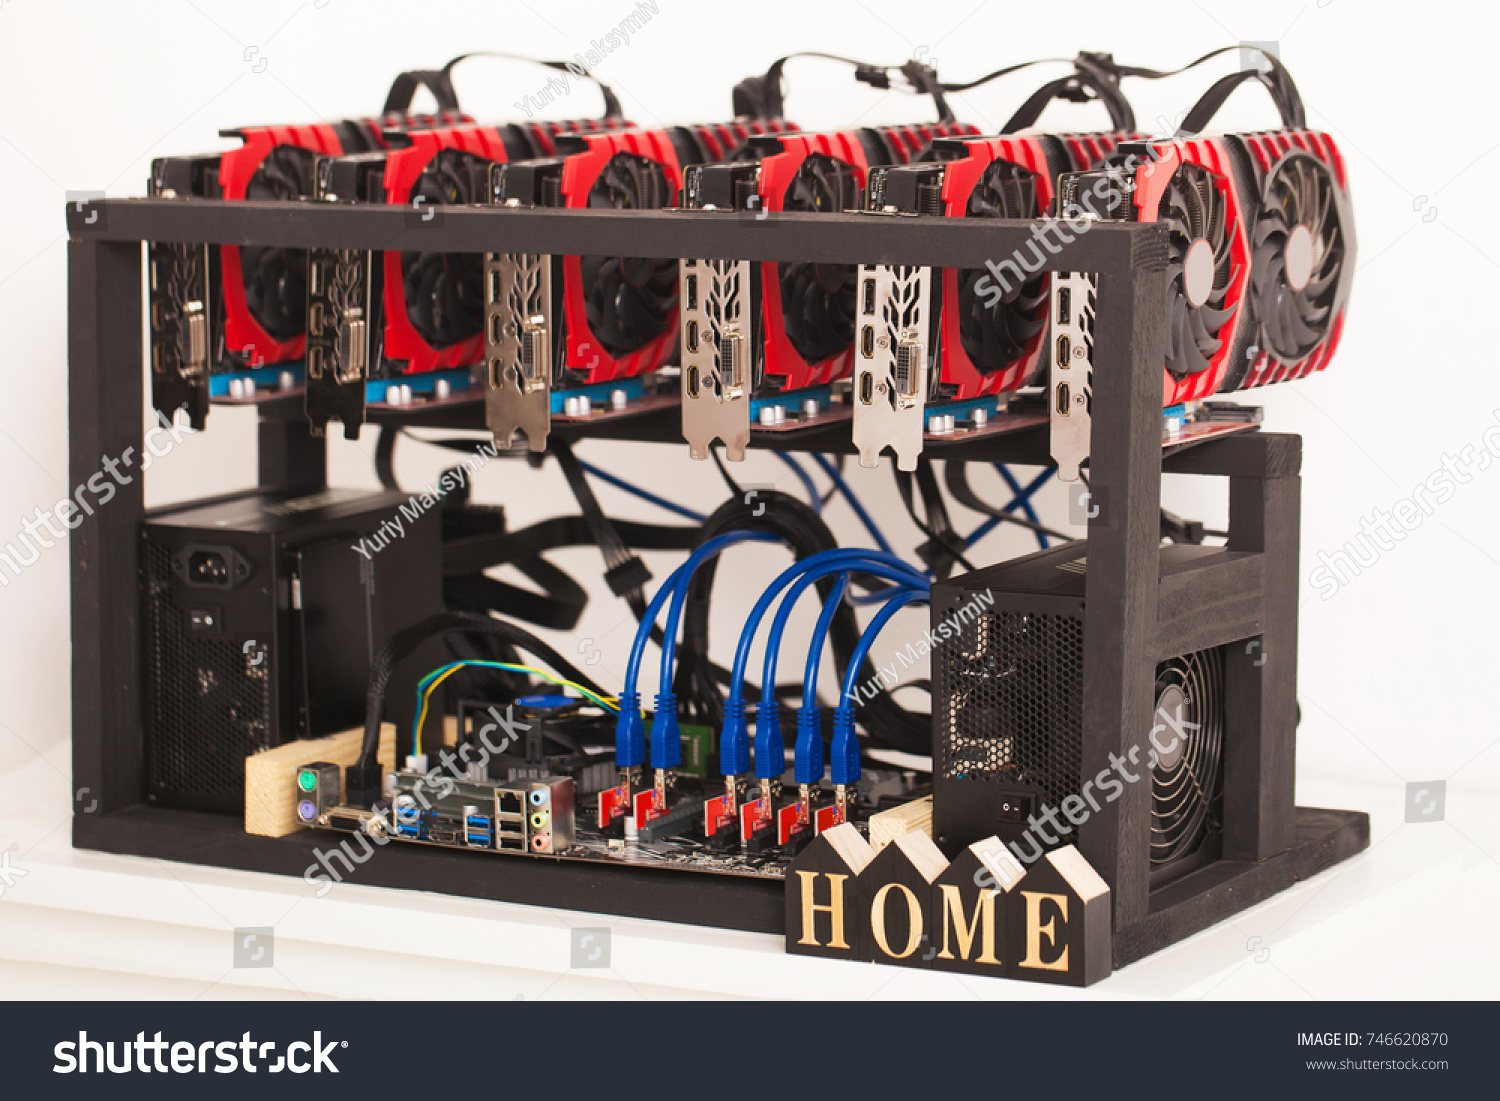 Working Graphic Video Cards Ecurrency Computer Stock Photo Edit Now Wiring Card For E Currency Bitcoin And Cryptocurrency Mining